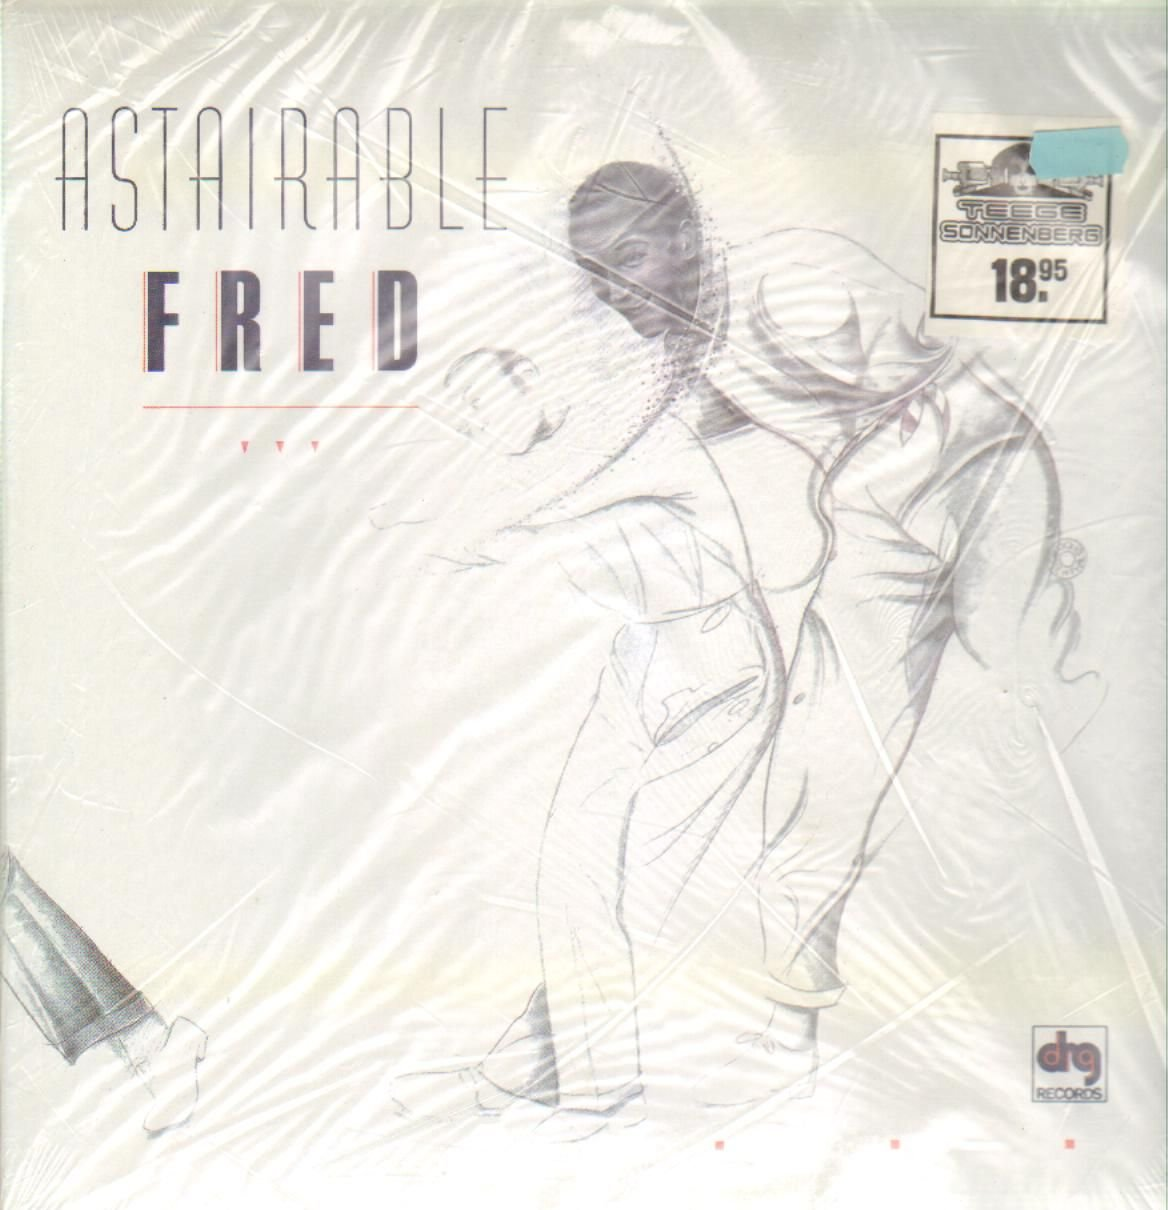 Astaireable Fred